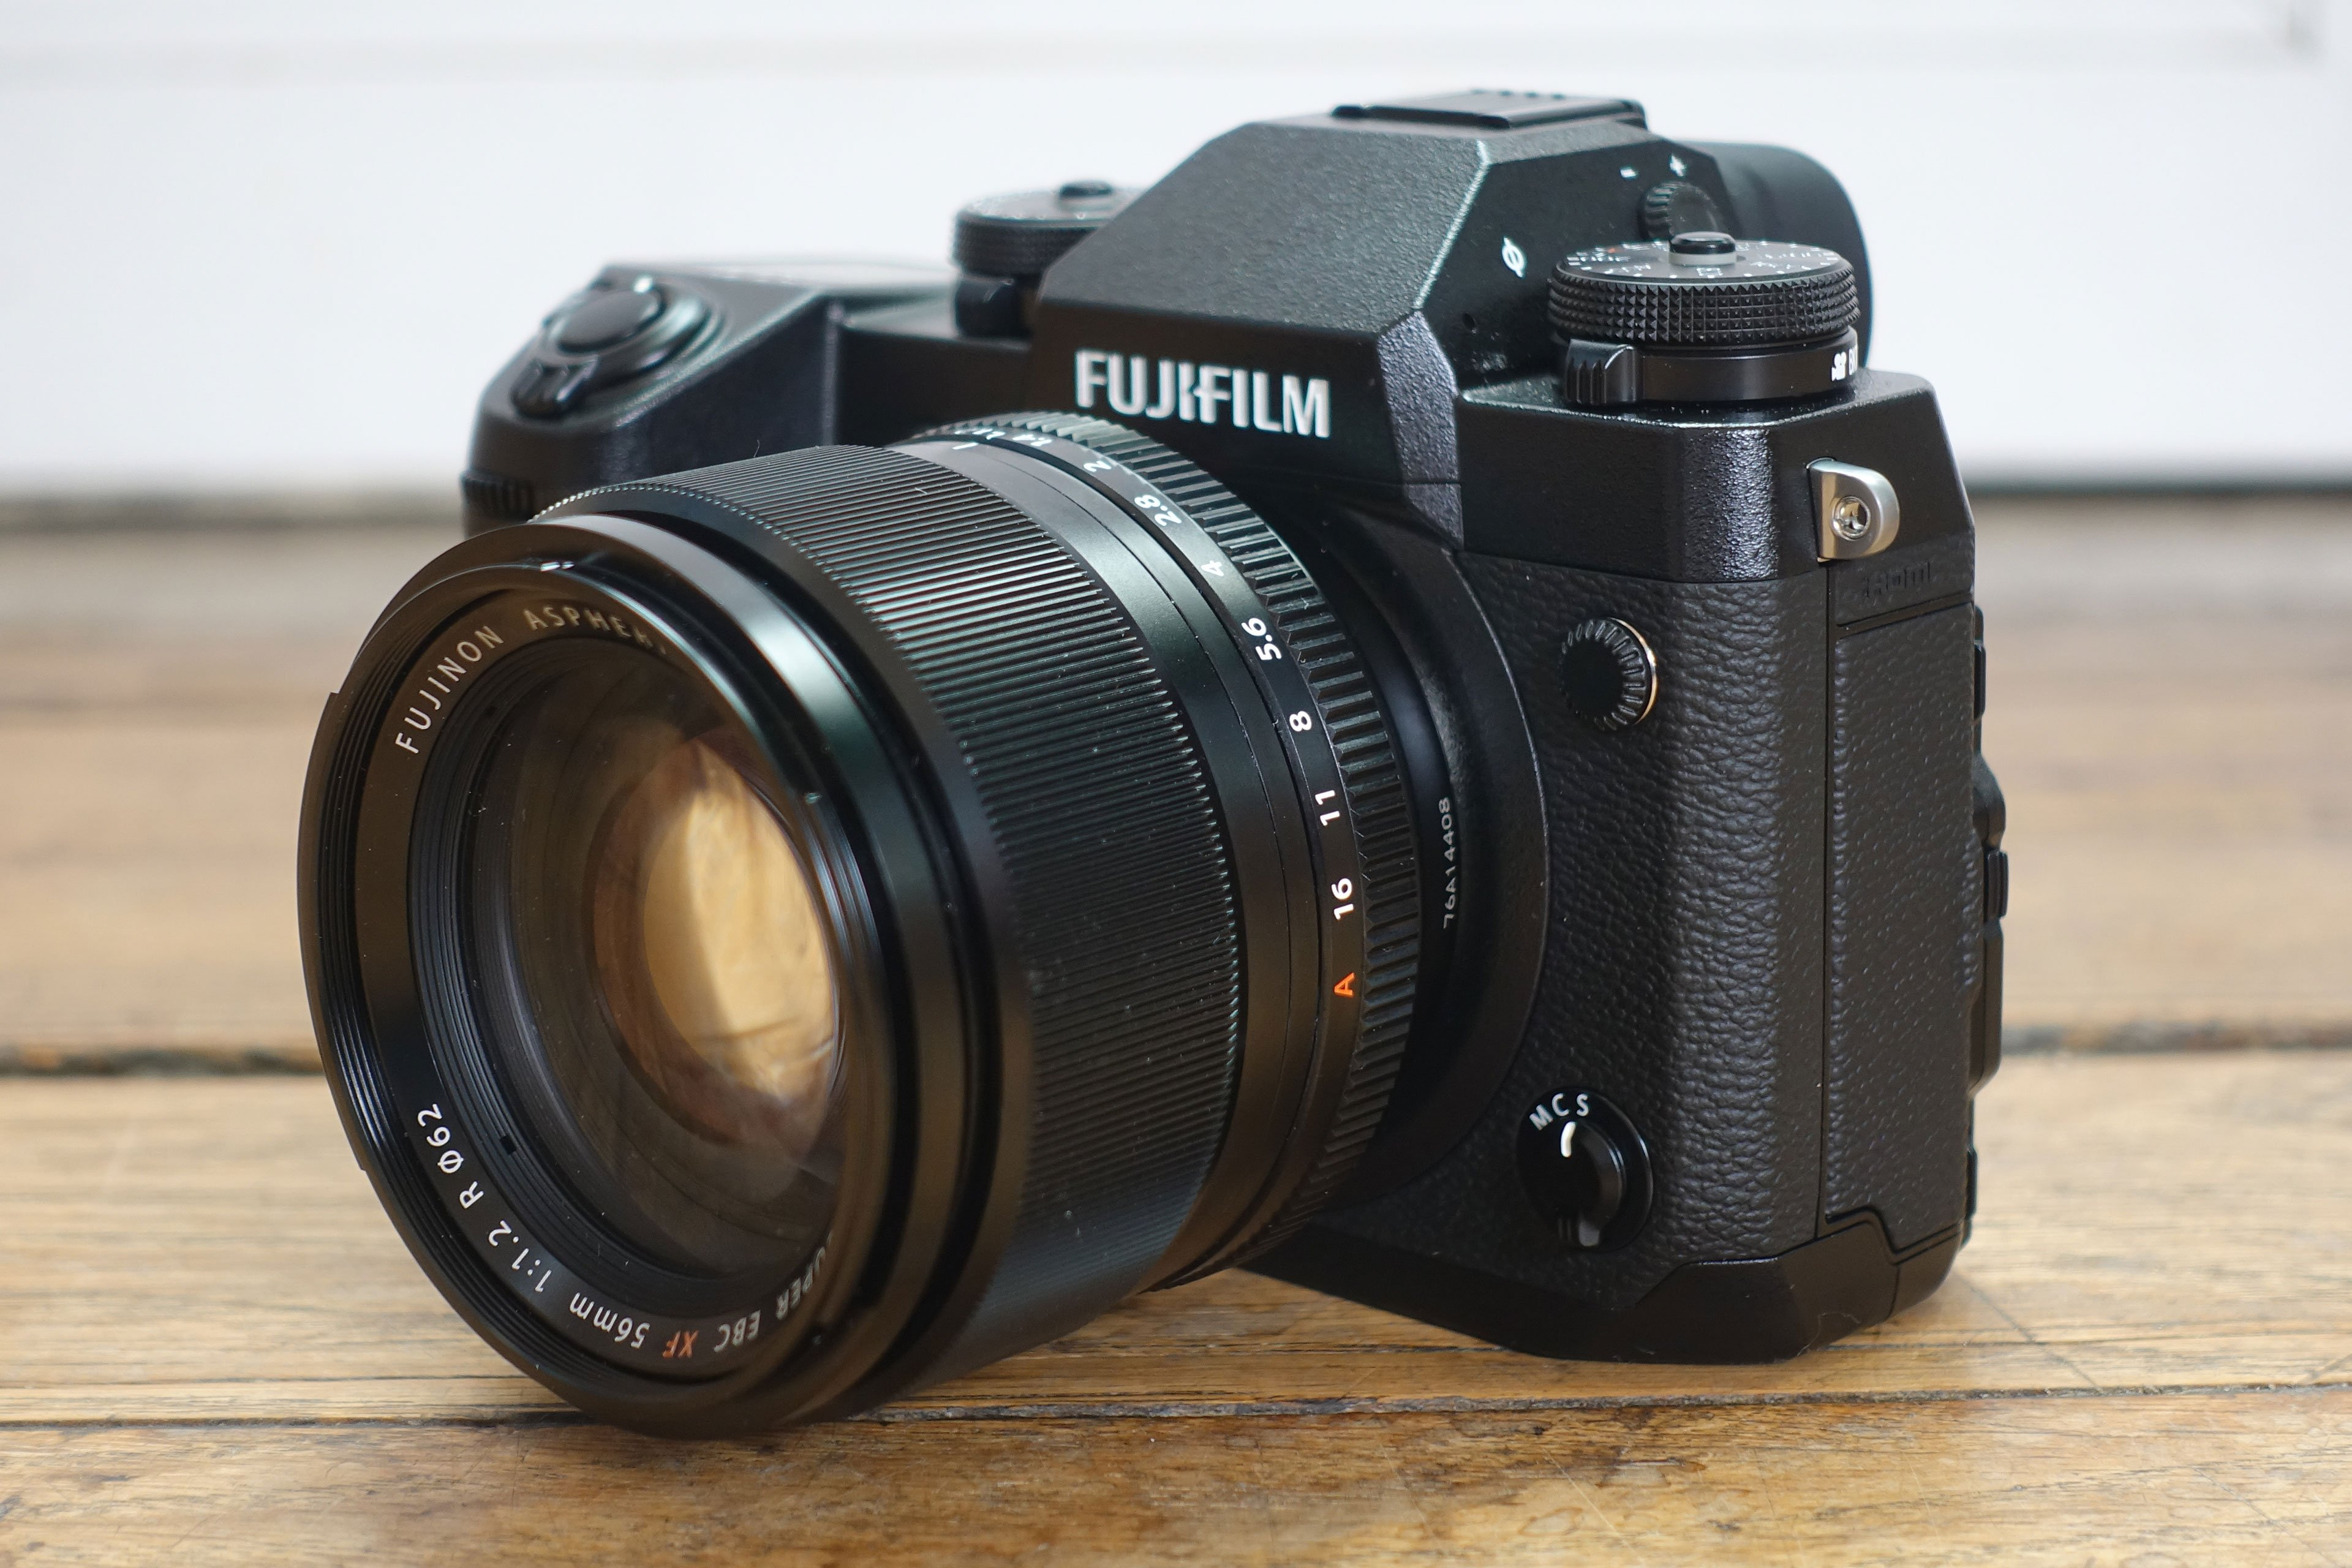 Fujifilm Xh1 Review Cameralabs X E3 Kit Xf 23mm F2 Silver 35mm F14